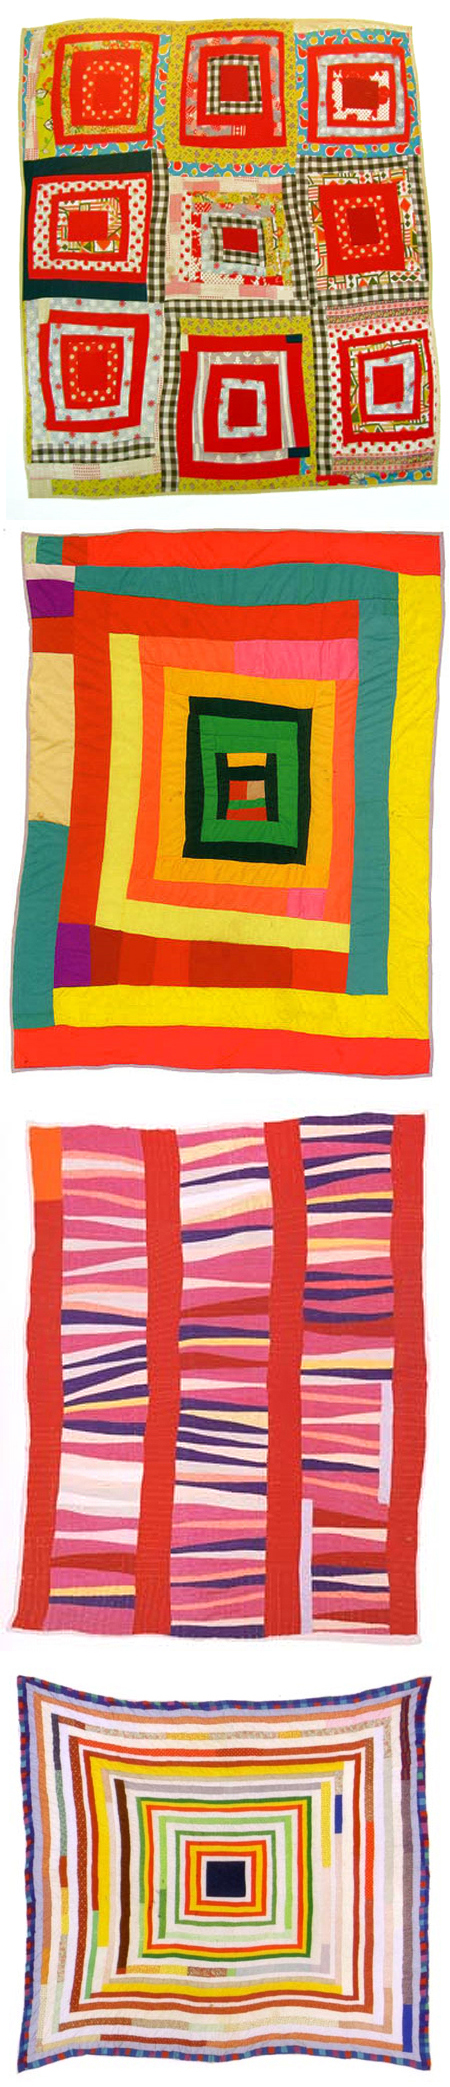 quilts_geesbend1